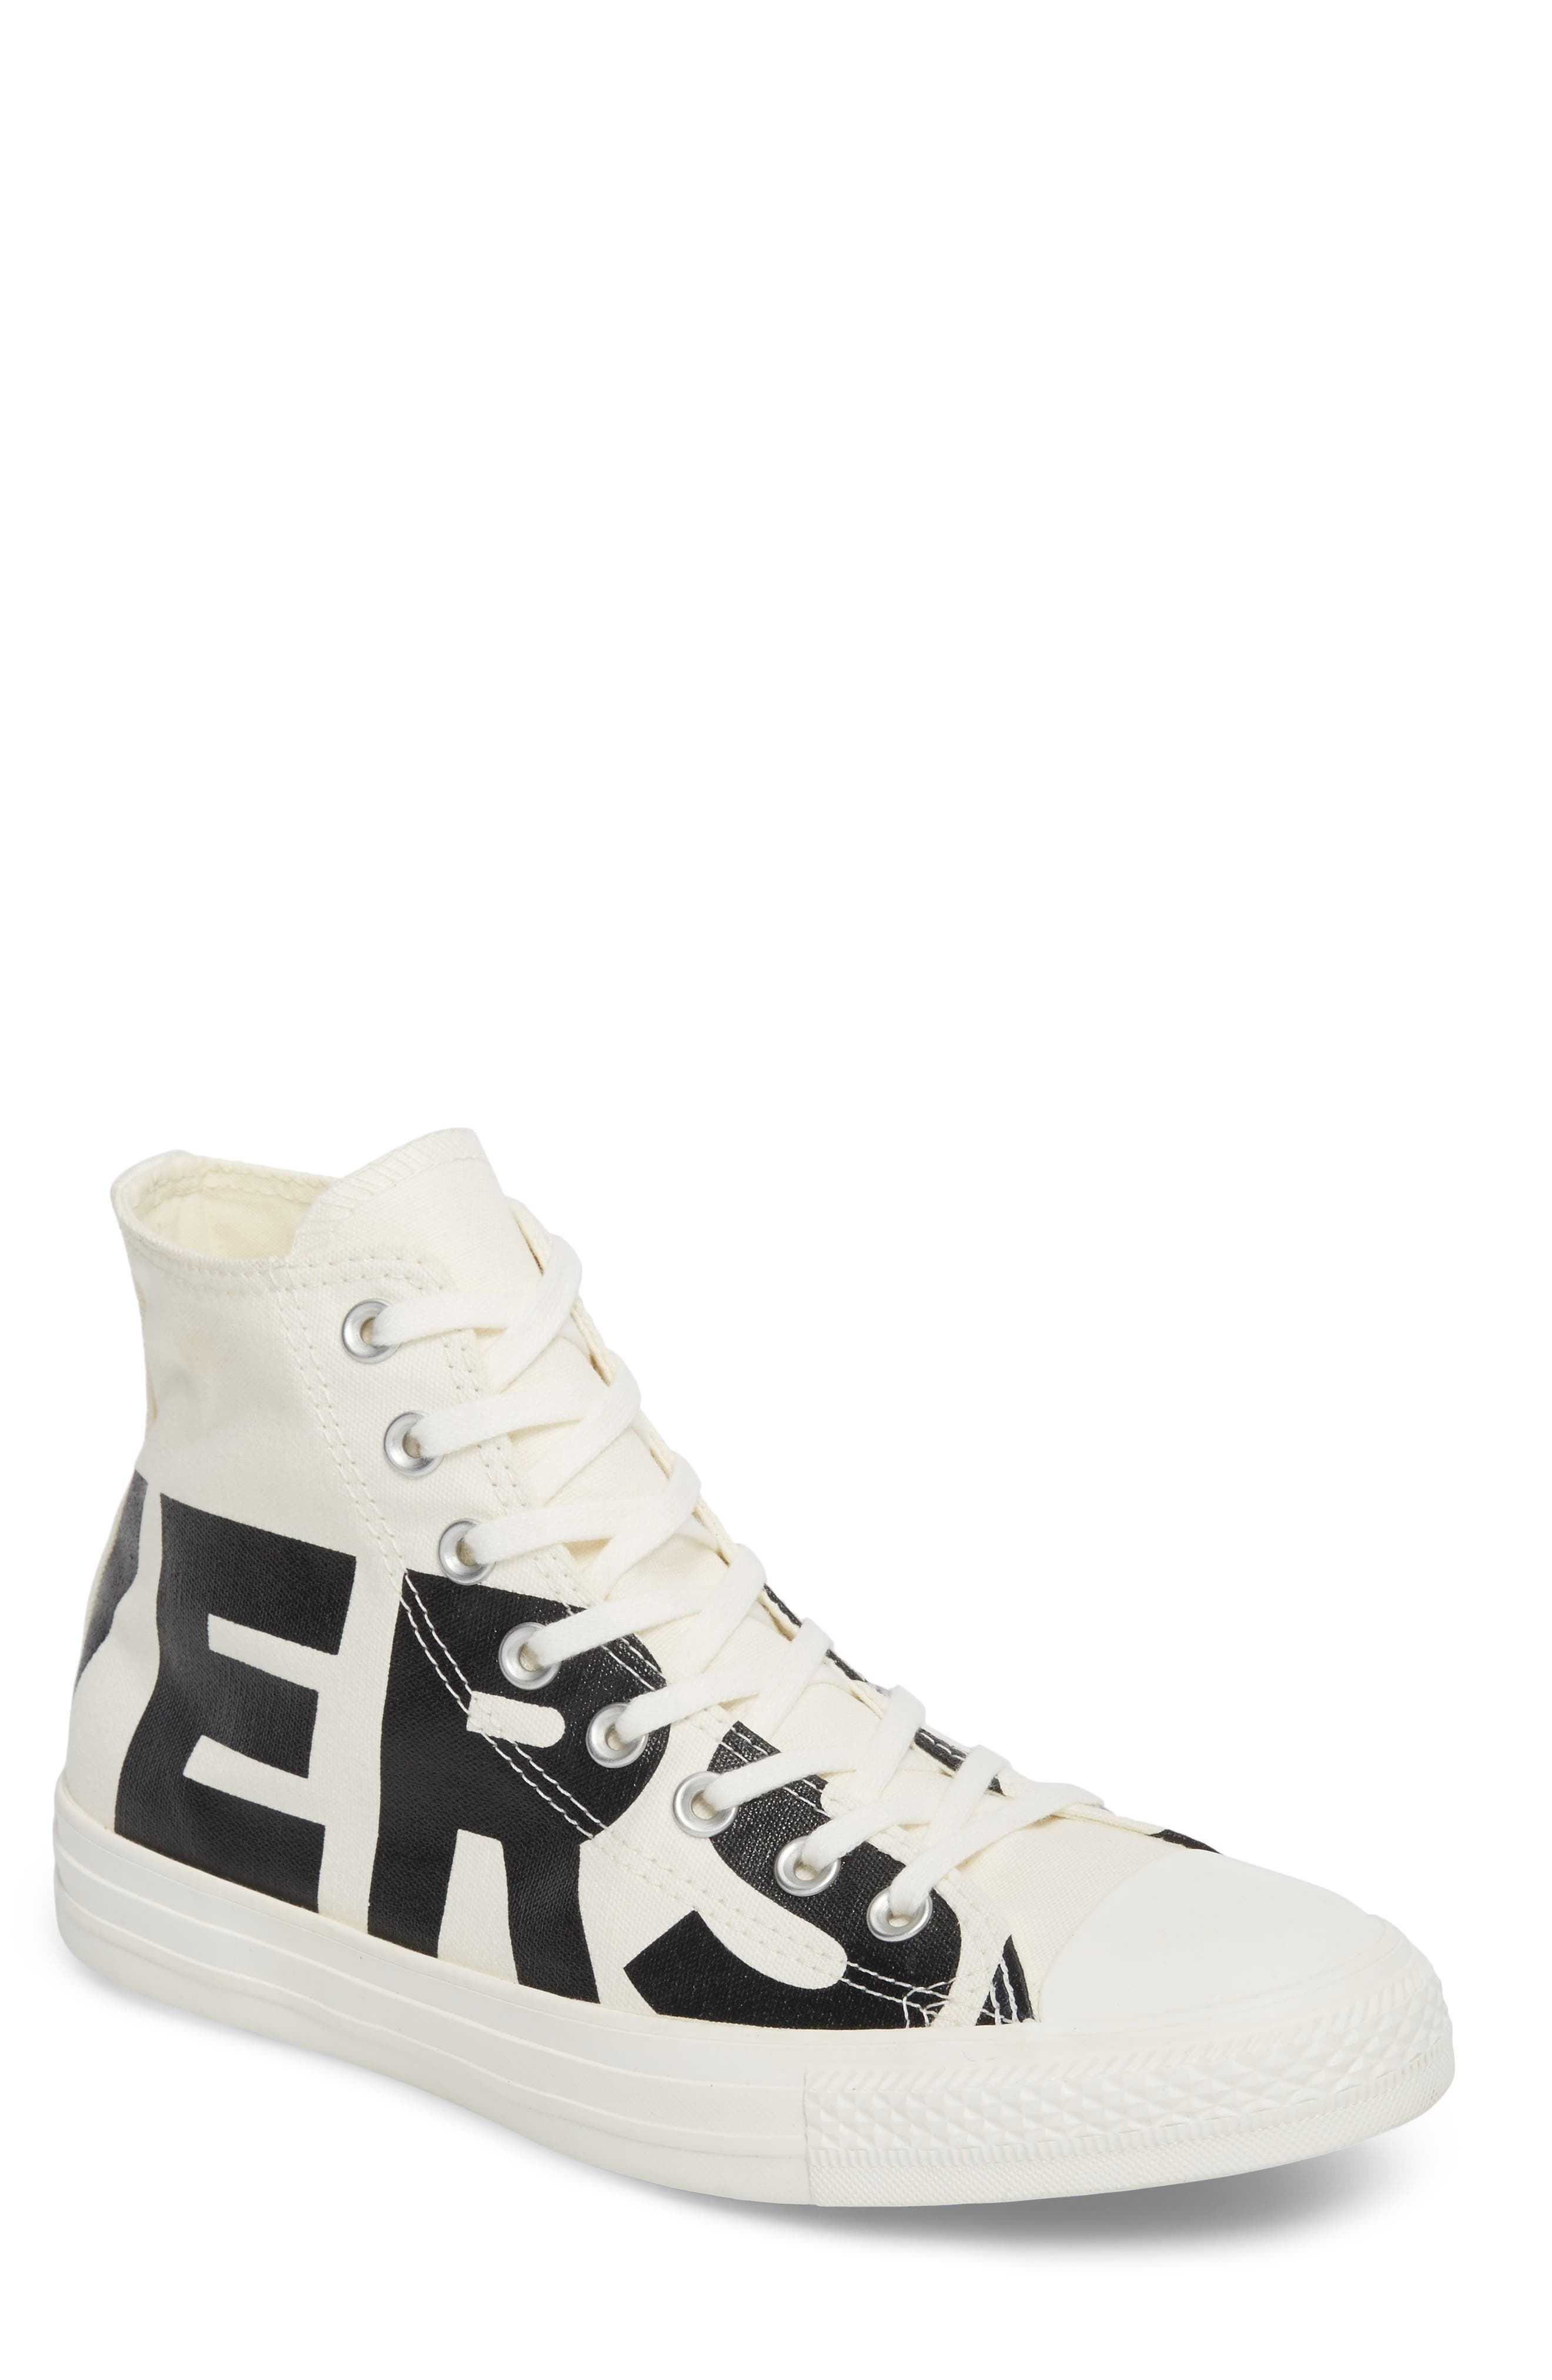 One Star Wordmark High Top Sneaker,                         Main,                         color, 001